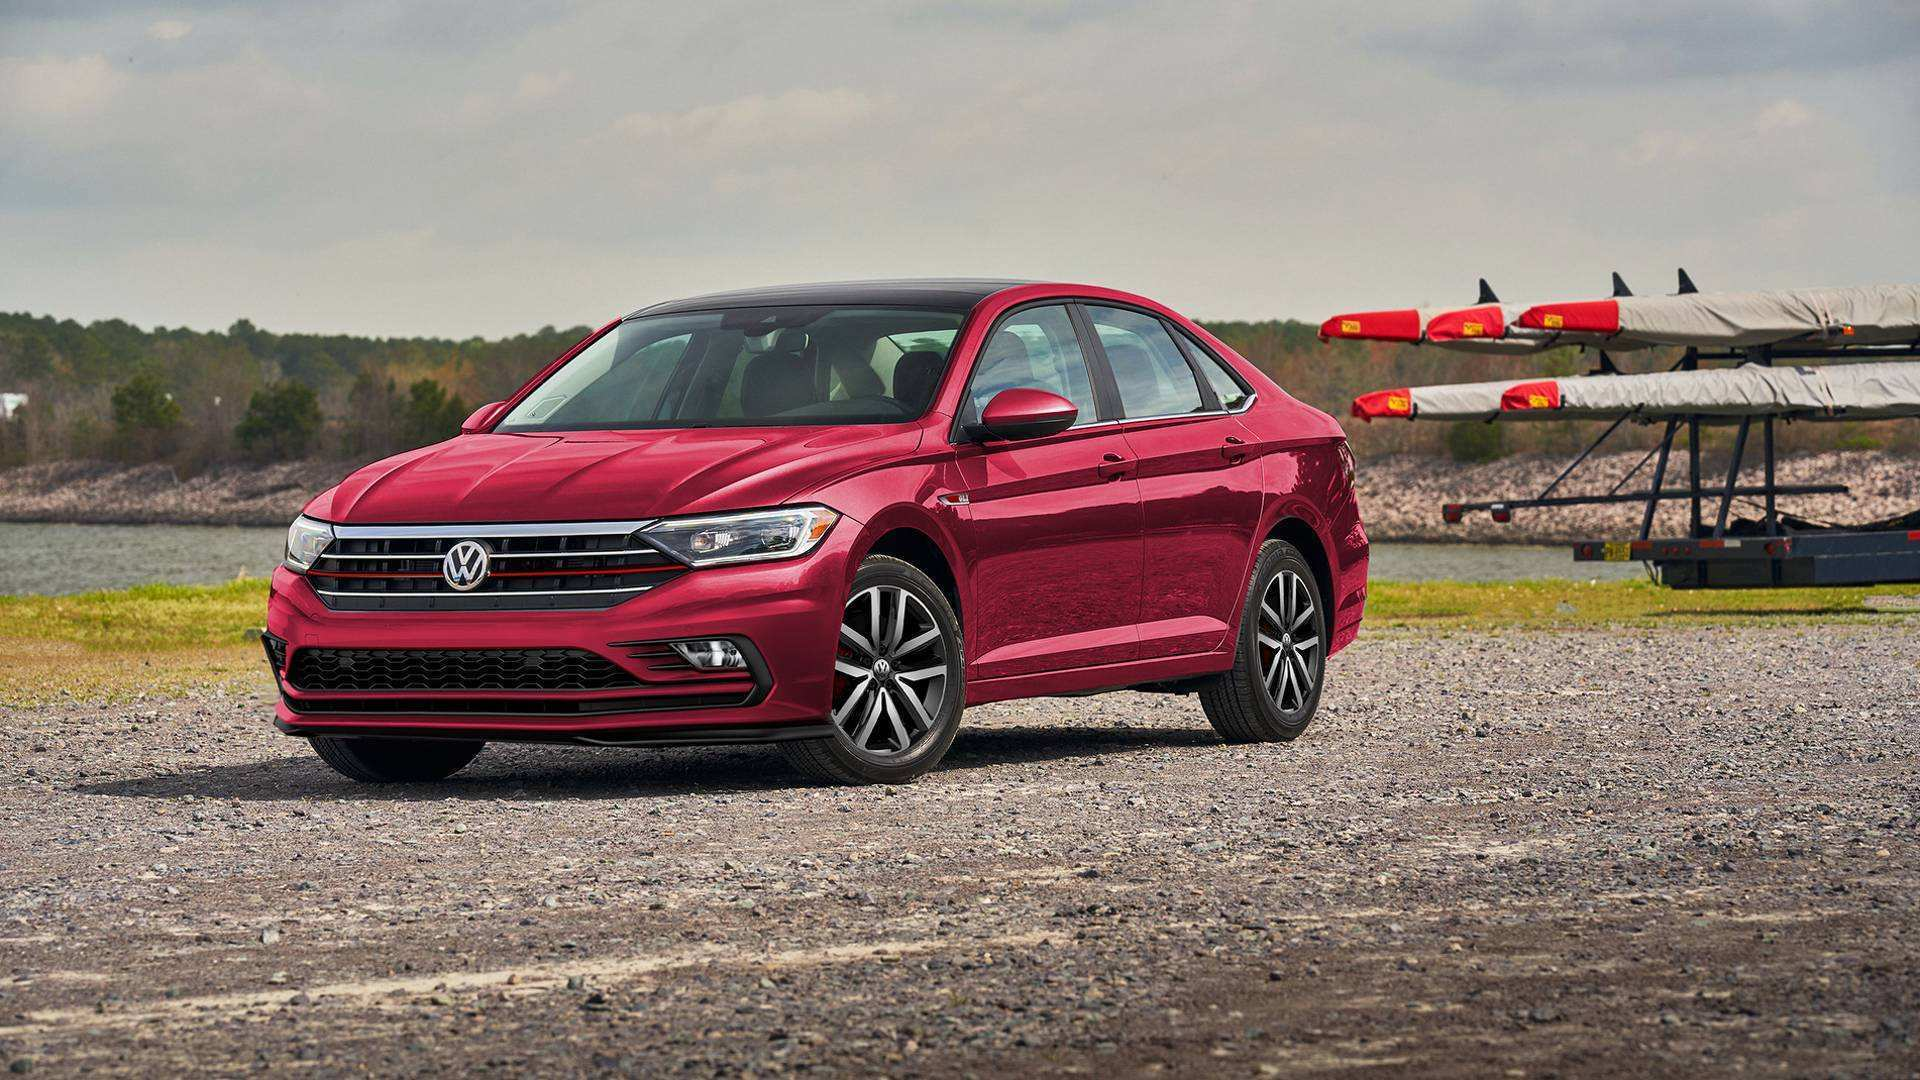 54 Best Volkswagen Jetta 2020 Price Spy Shoot